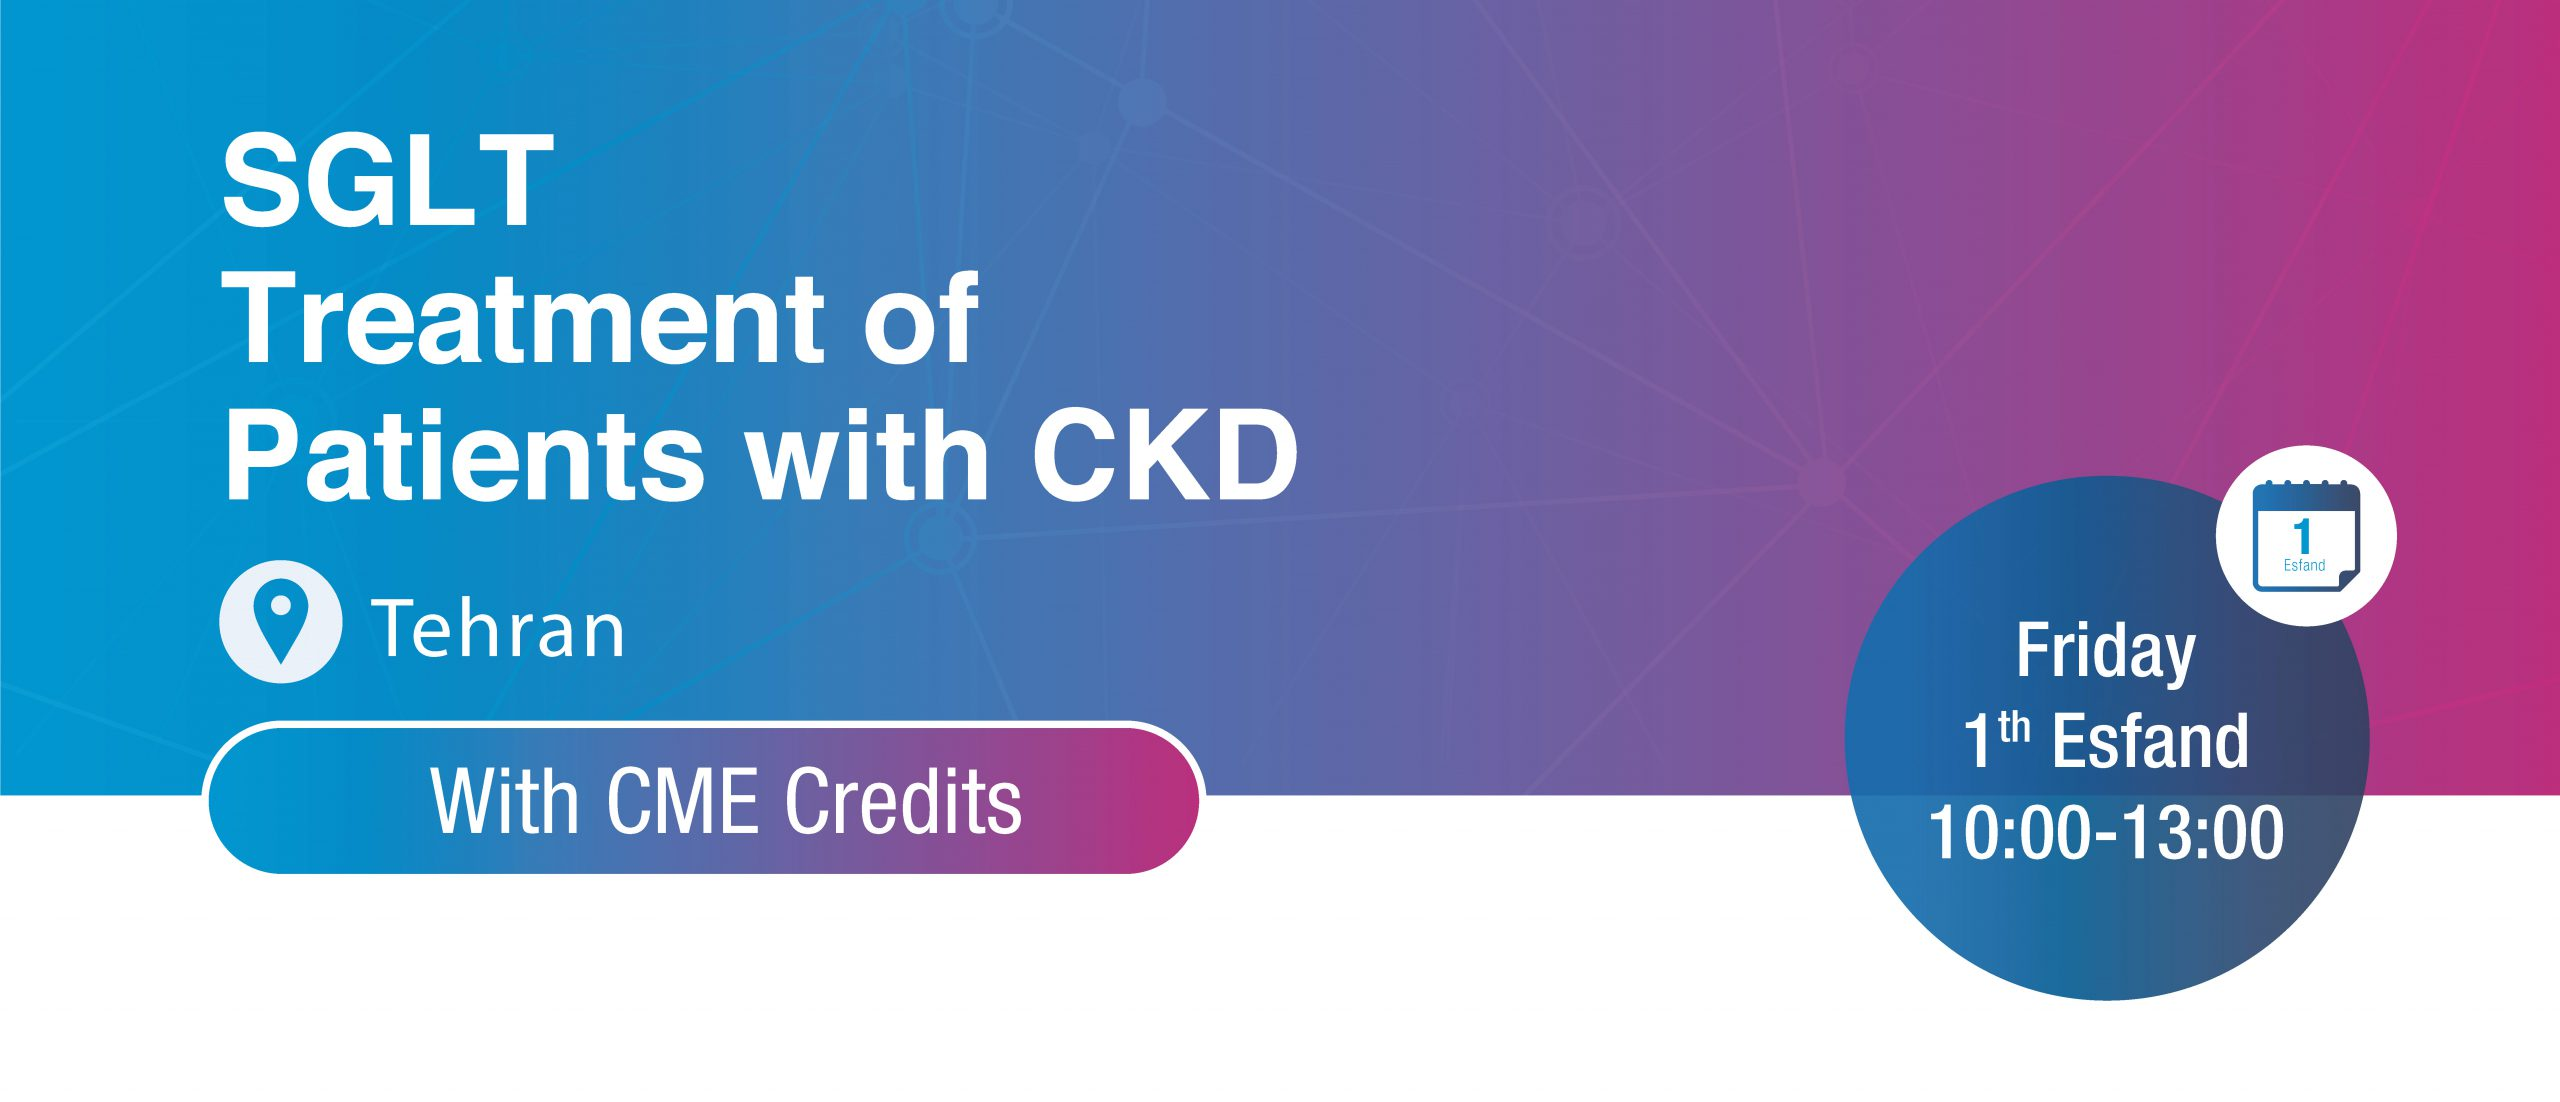 SGLT2 Inhibitors in Treatment of Patients with CKD